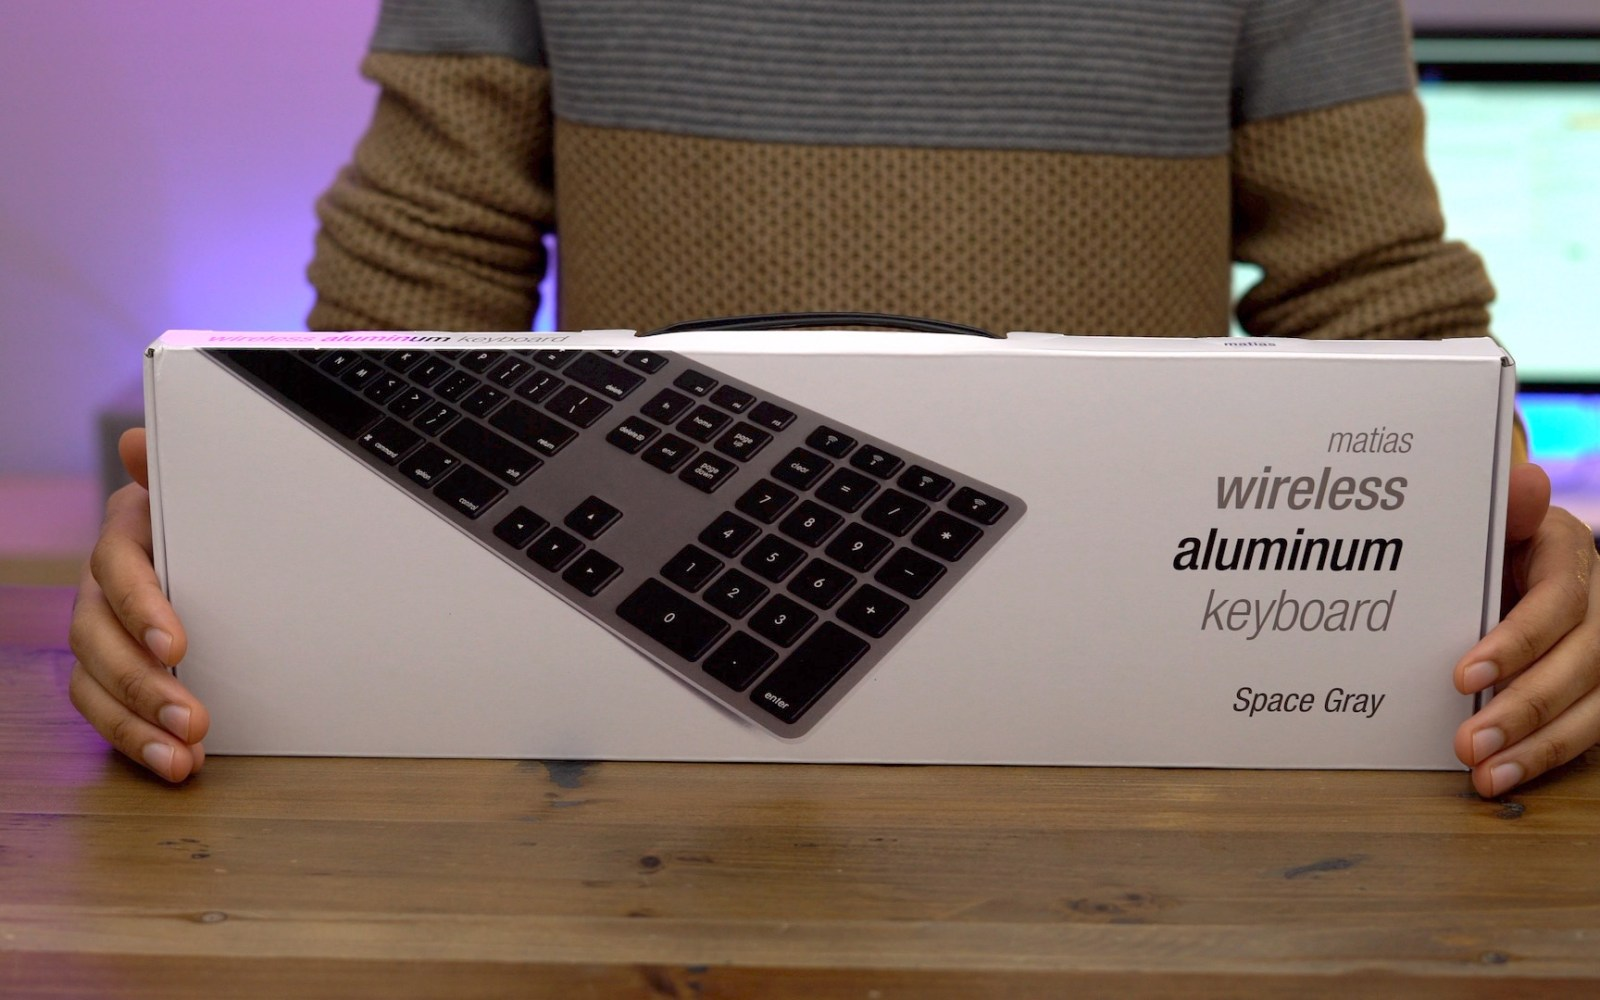 The Matias Wireless Aluminum Keyboard is the keyboard Apple should be making [Video]